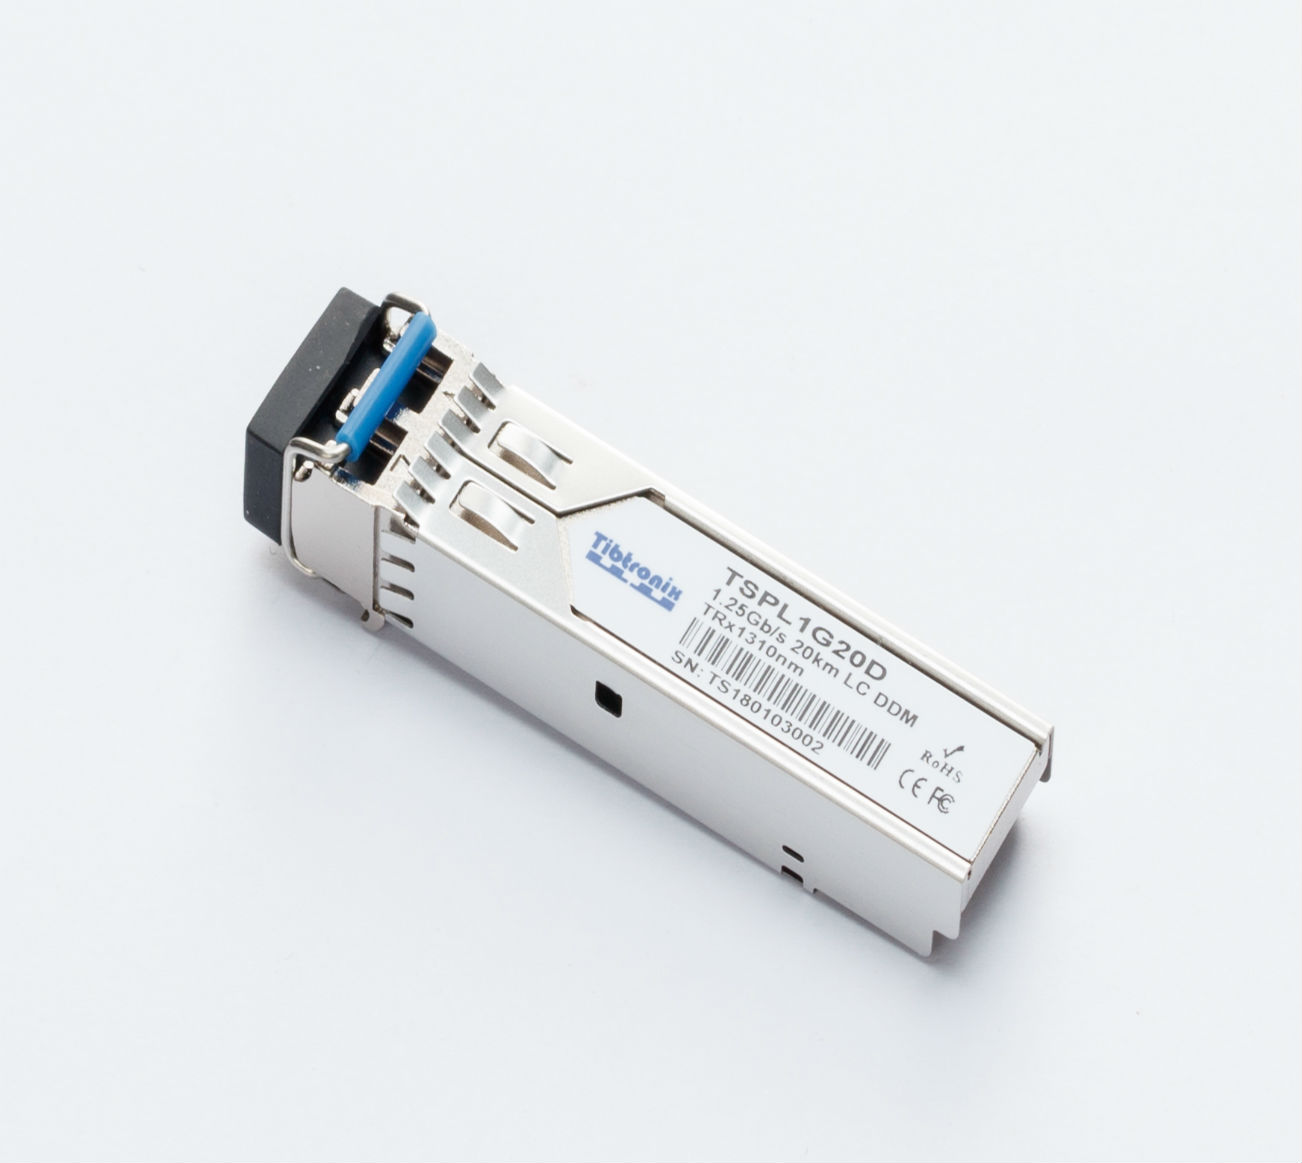 1000BASE-LX/LH SFP 1310nm 20km DDM Transceiver